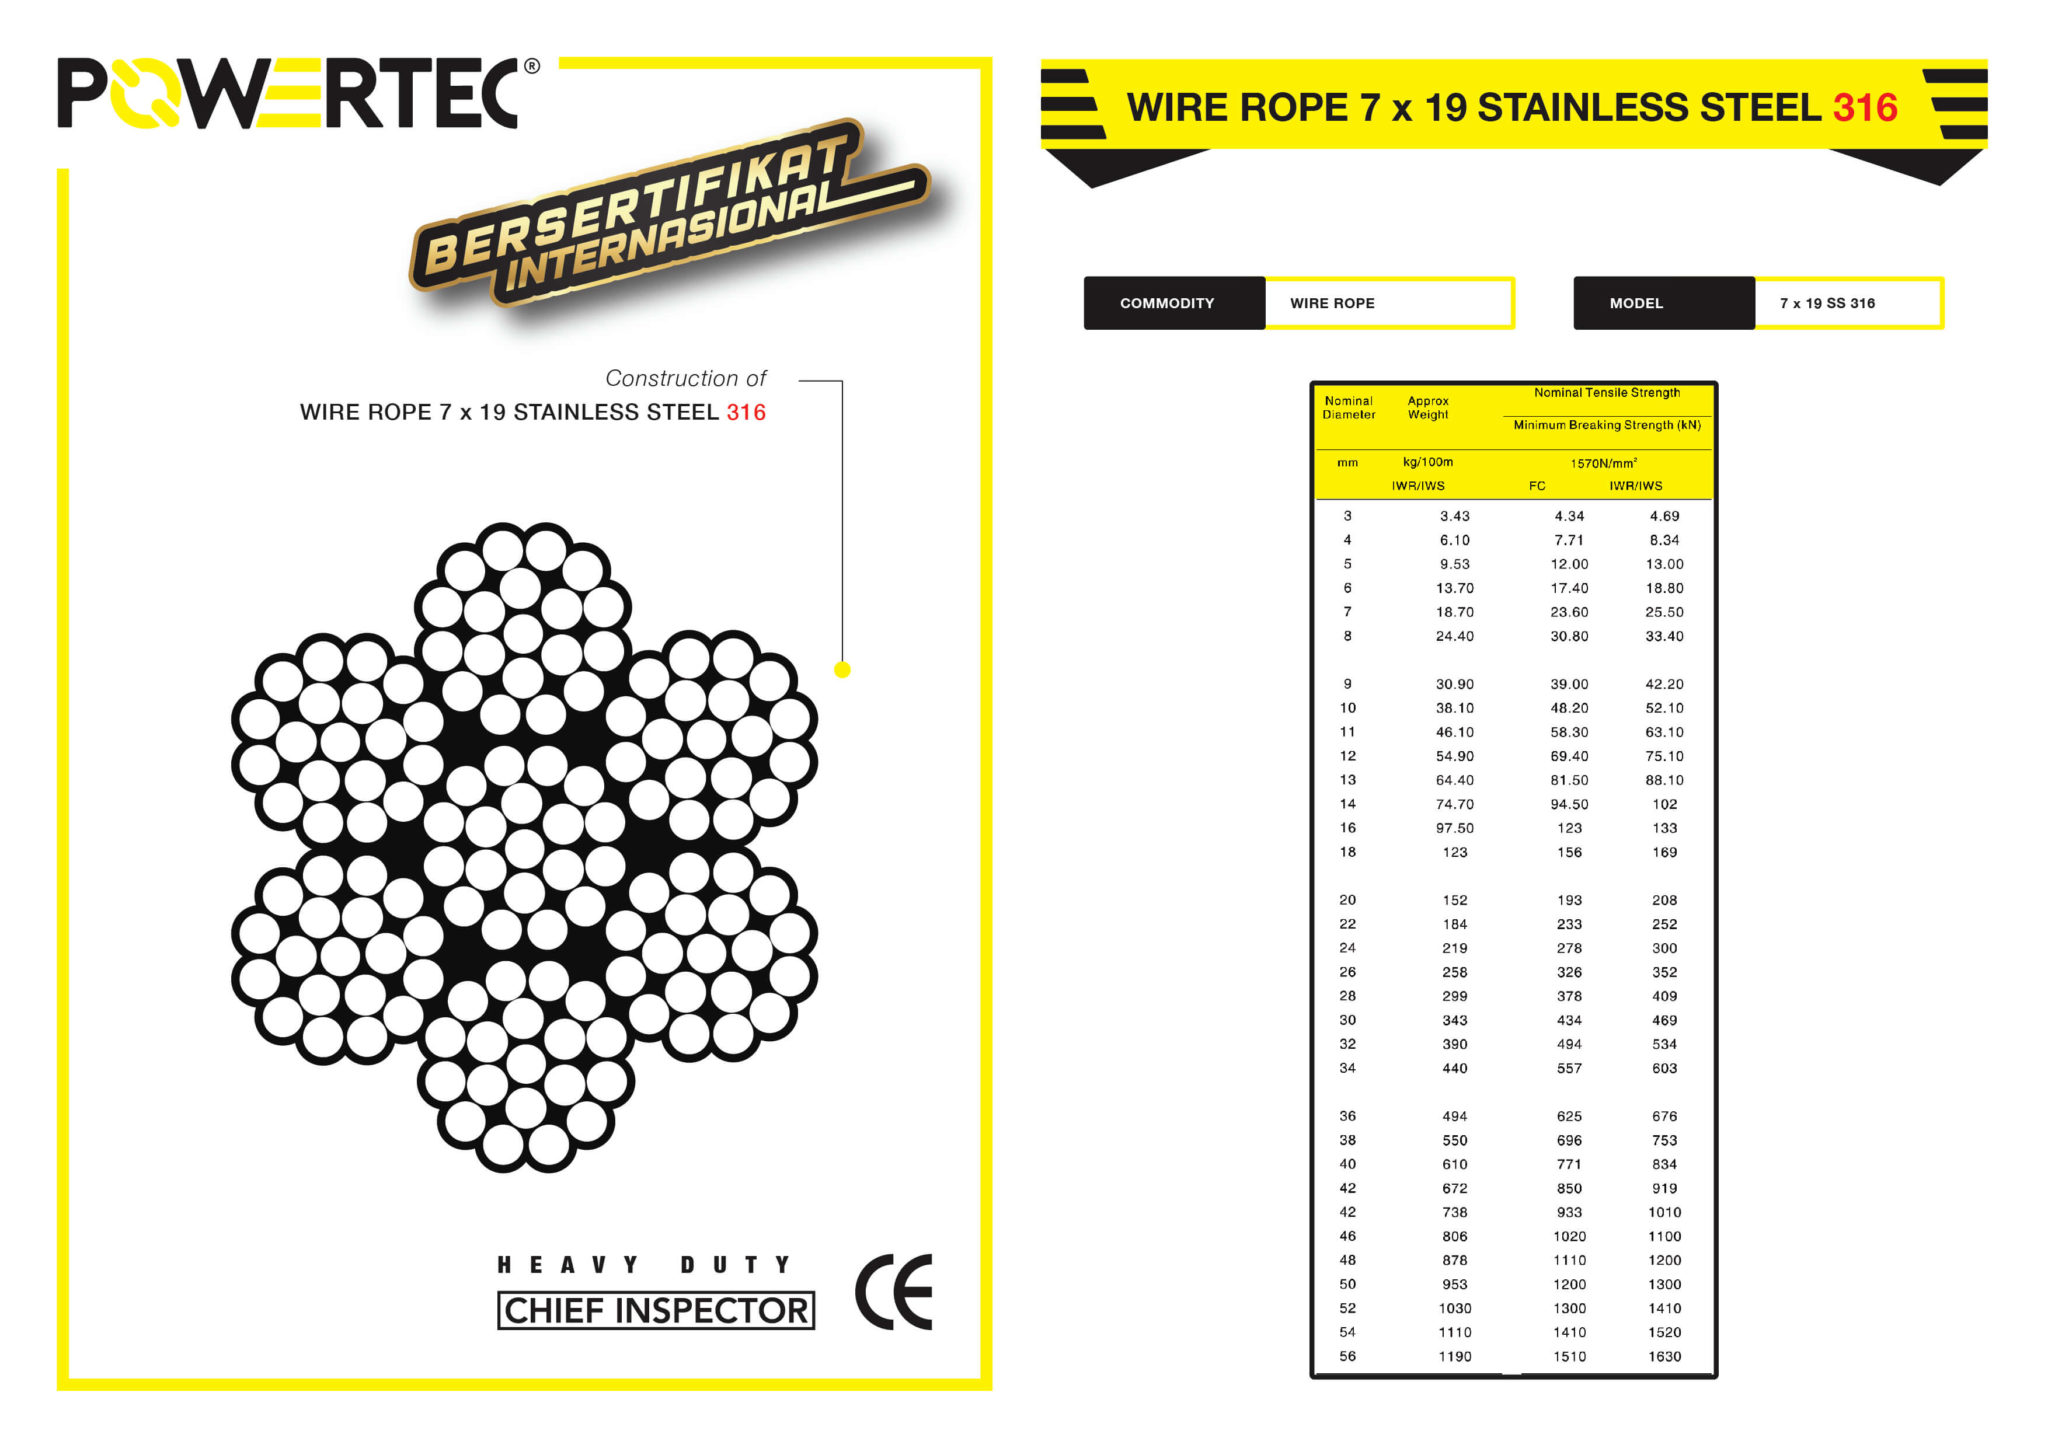 POWERTEC WIRE ROPE 7 x 19 STAINLESS STEEL 316 BROCHURE